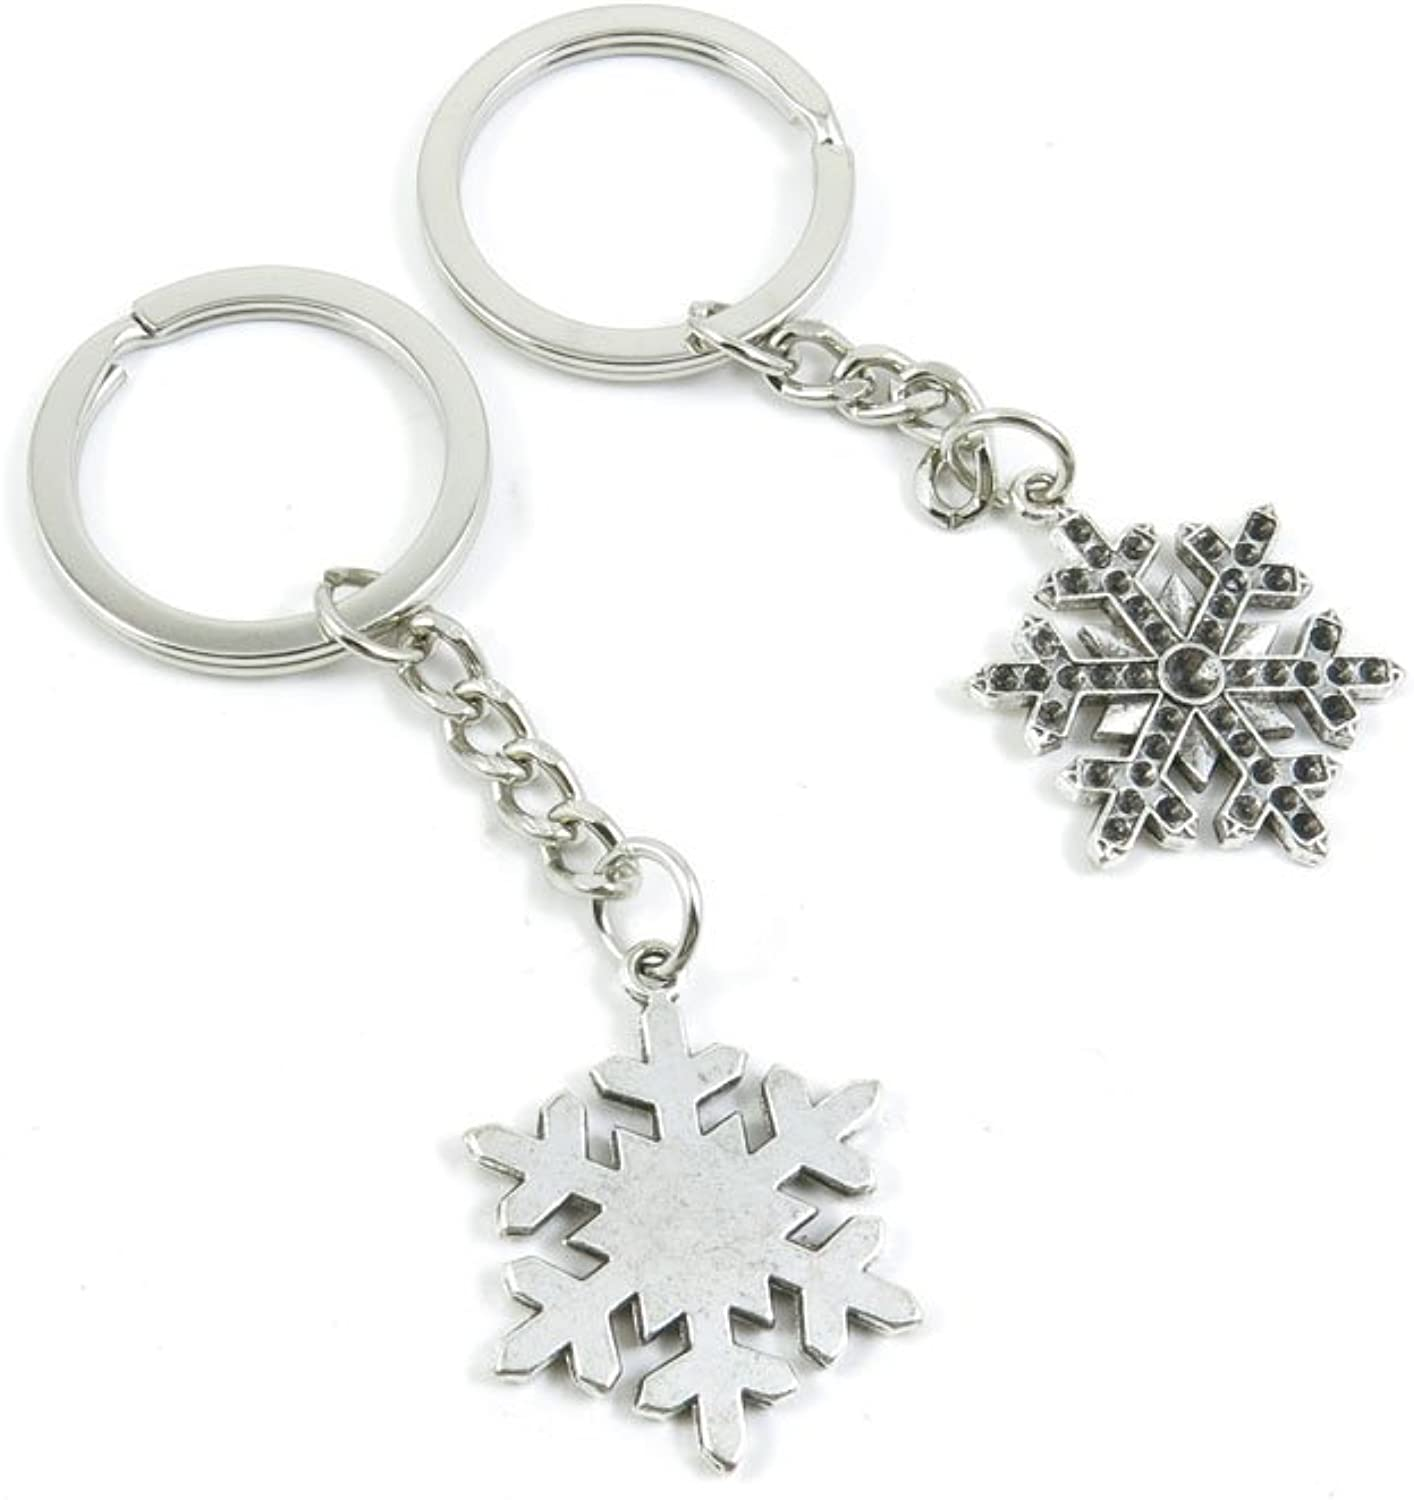 100 Pieces Keychain Keyring Door Car Key Chain Ring Tag Charms Bulk Supply Jewelry Making Clasp Findings I2ZX1S Snow Flake Snowflake